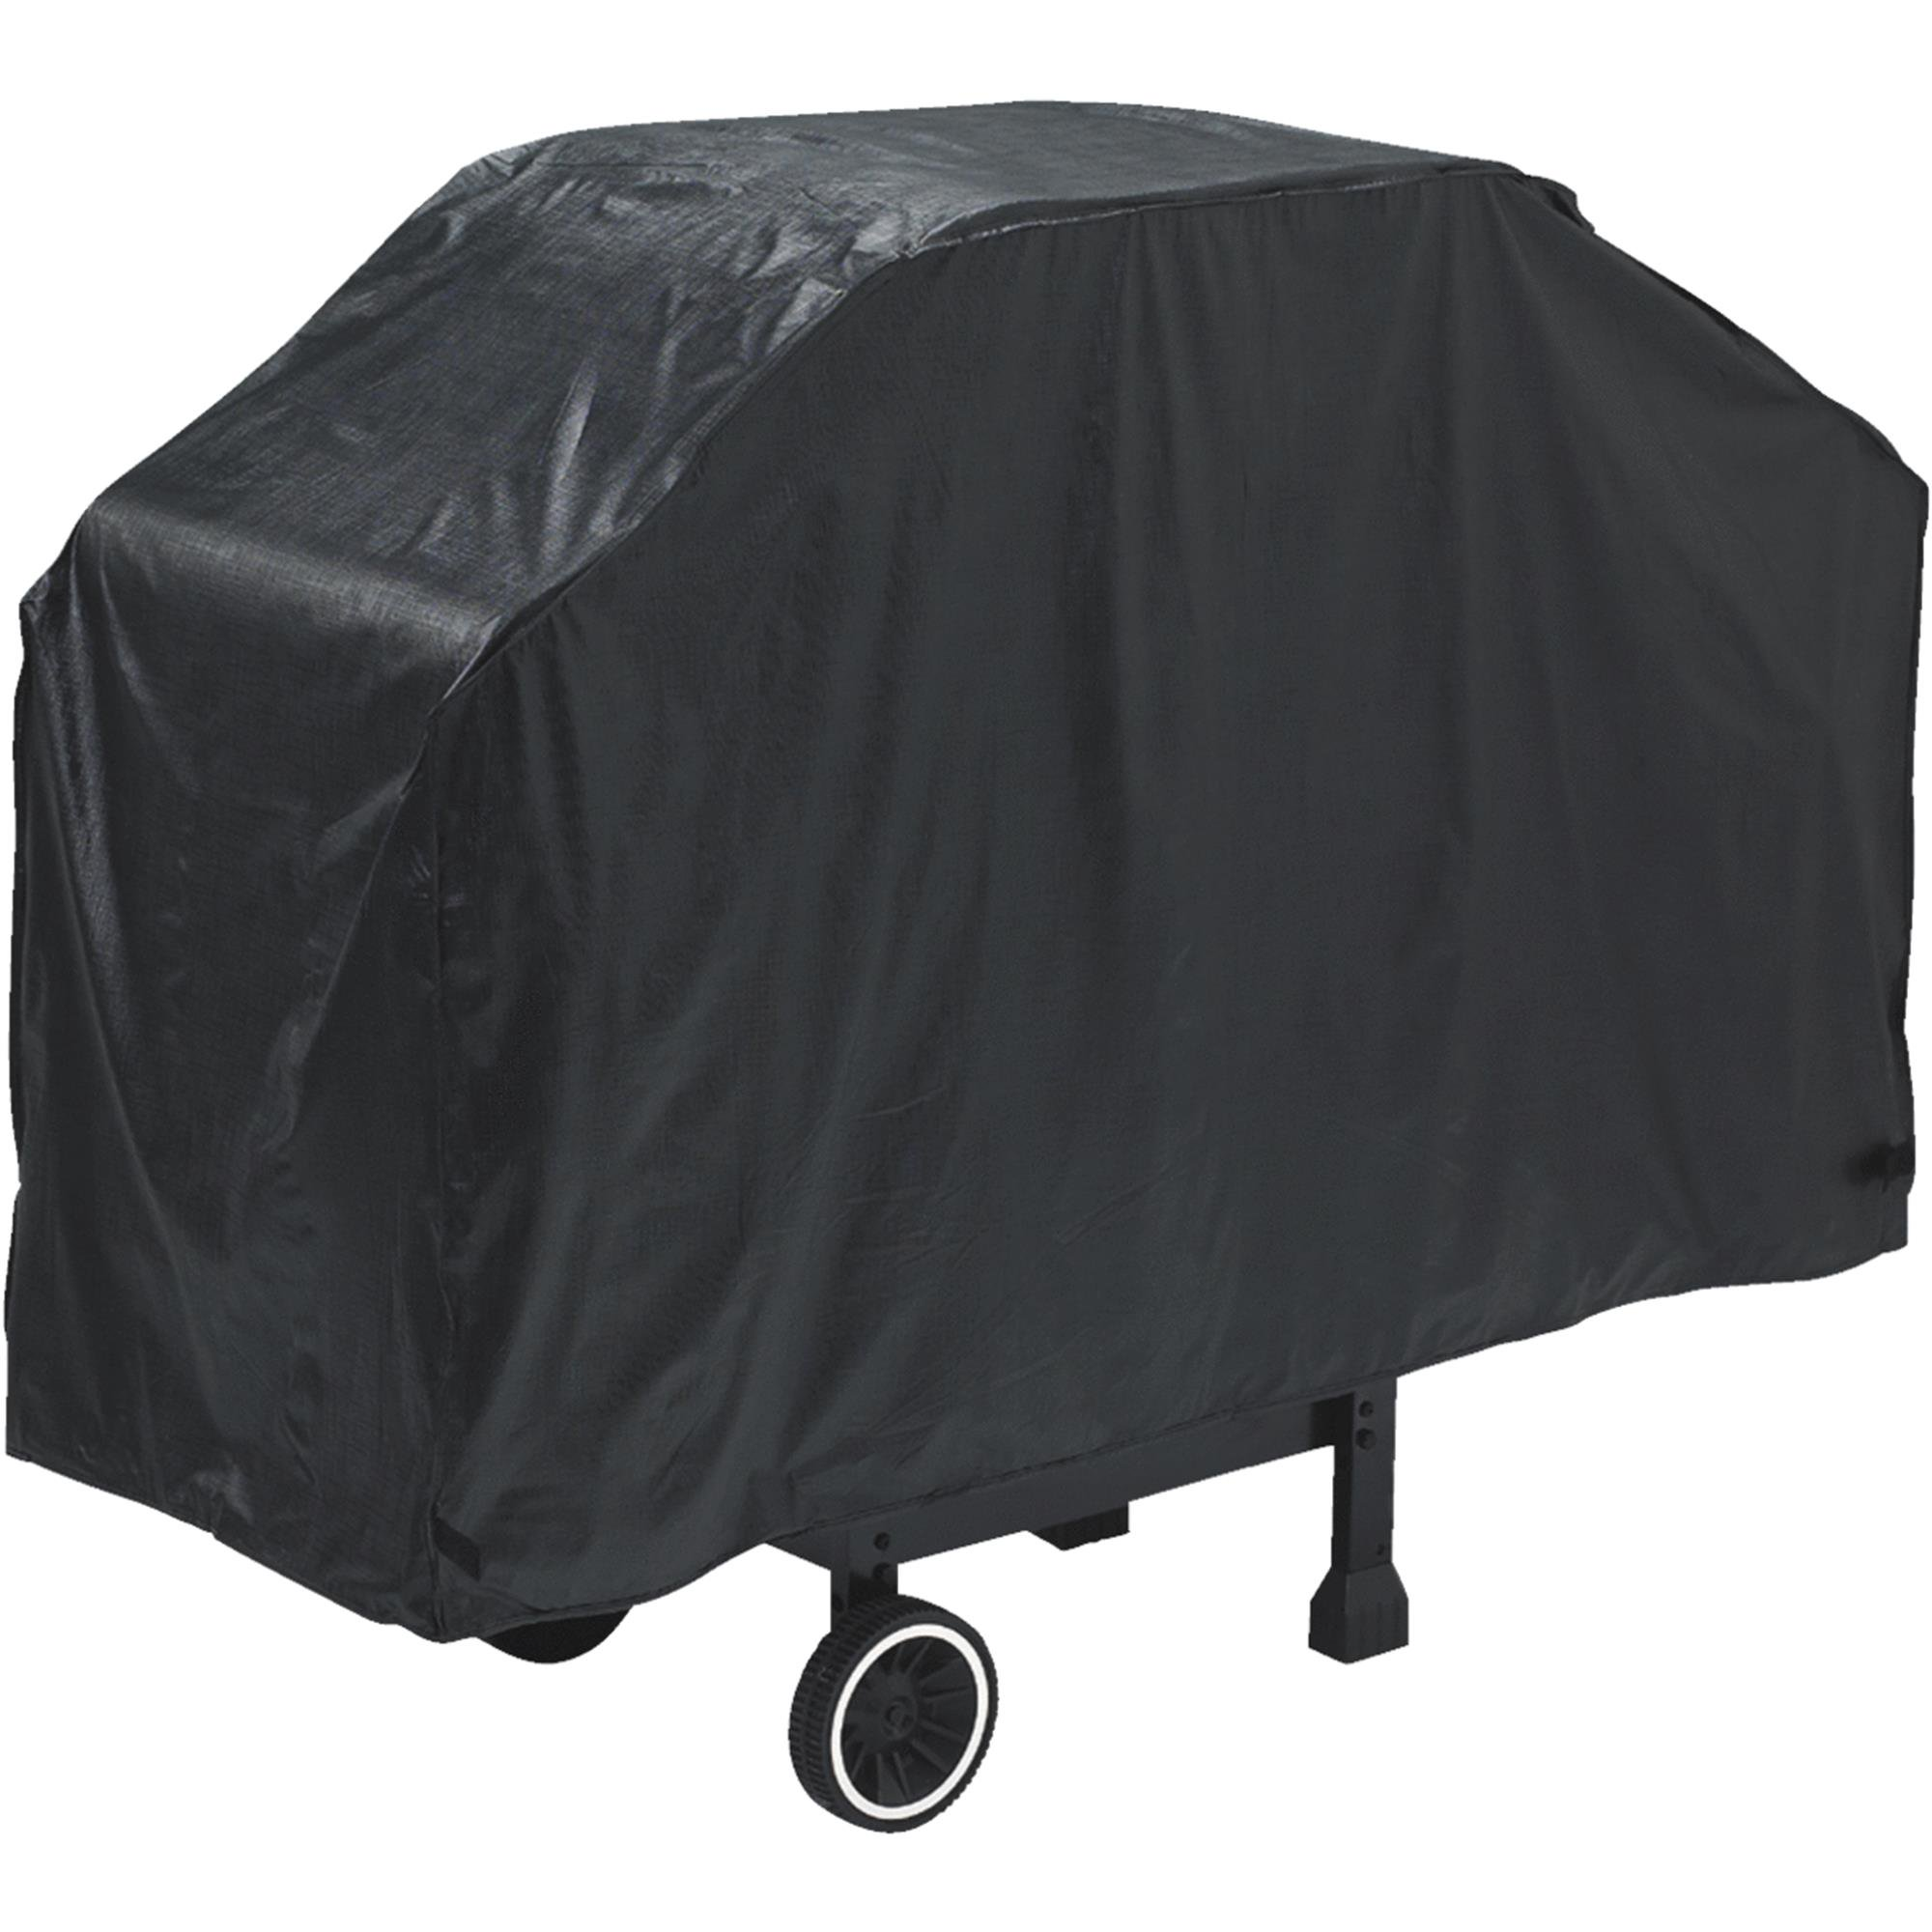 "Onward Grill Pro 84160 60"" X 21"" X 38"" Full Cart Grill Covers Assorted Colors"